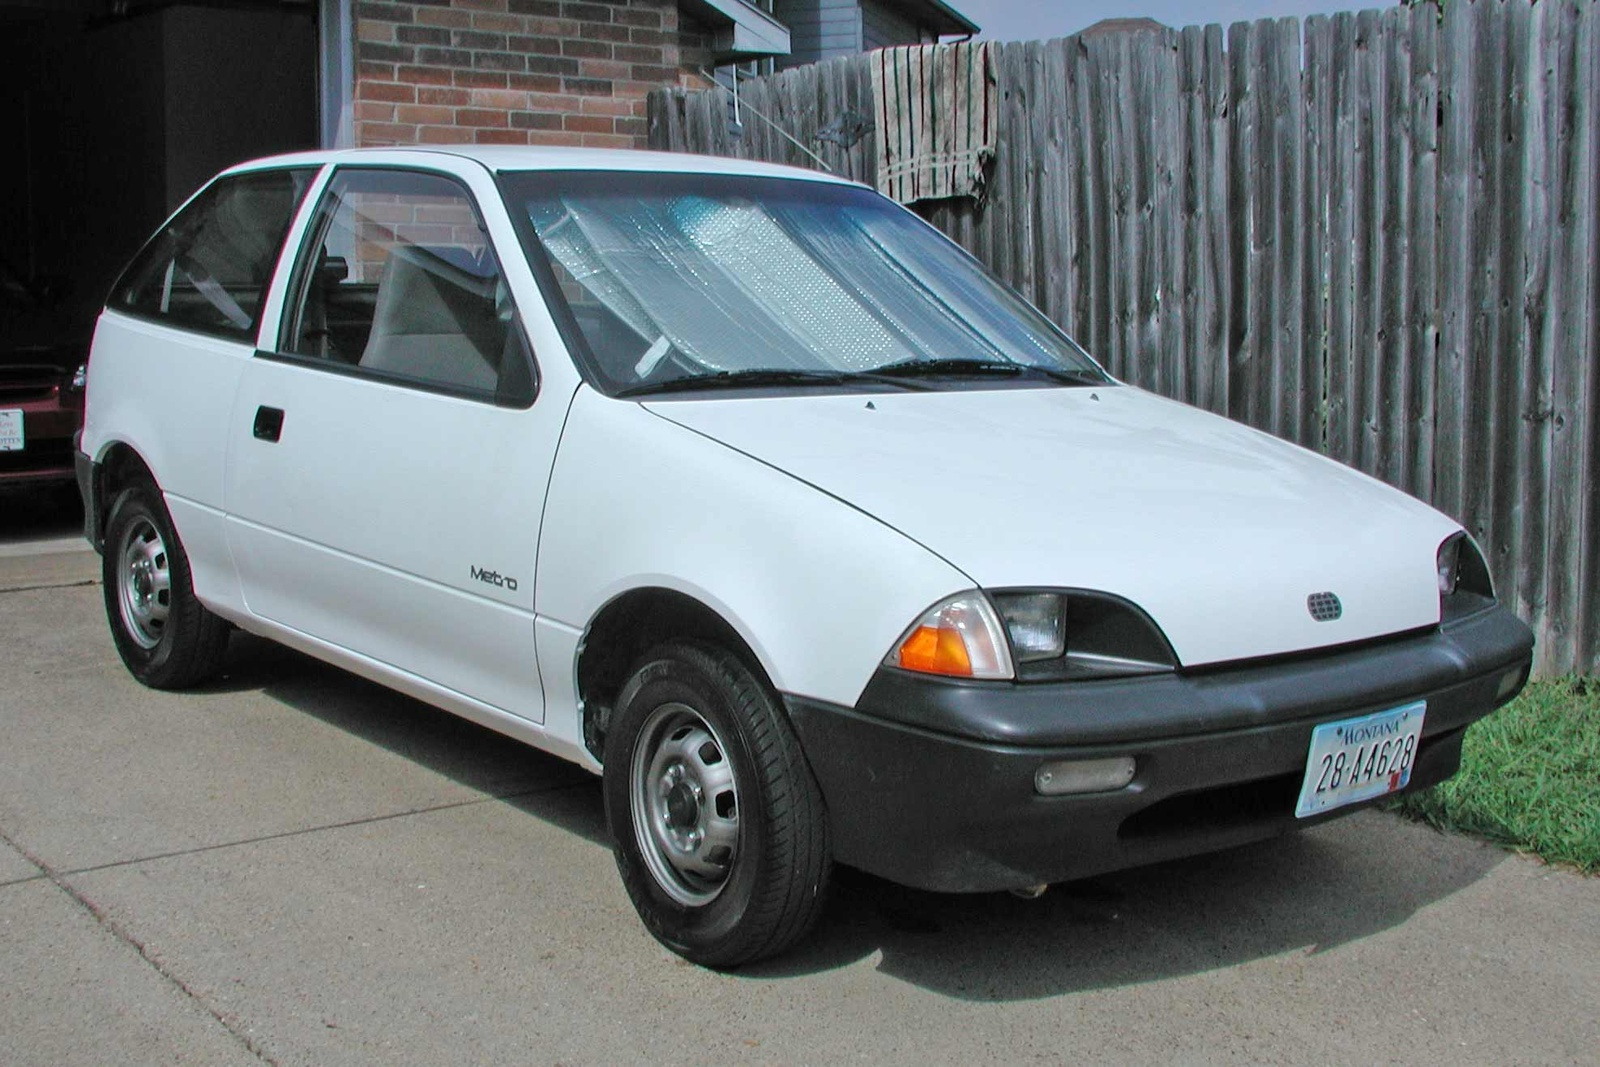 Geo Metro 1 0 2001 Specs And Images further 1fqne Need Wiring Diagram 1992 Geo Tracker 4x4 Speed additionally 1996 Geo Tracker Pictures C1876 additionally Engine Harness 1997 Volvo 960 additionally Geo Metro. on 1991 geo prizm